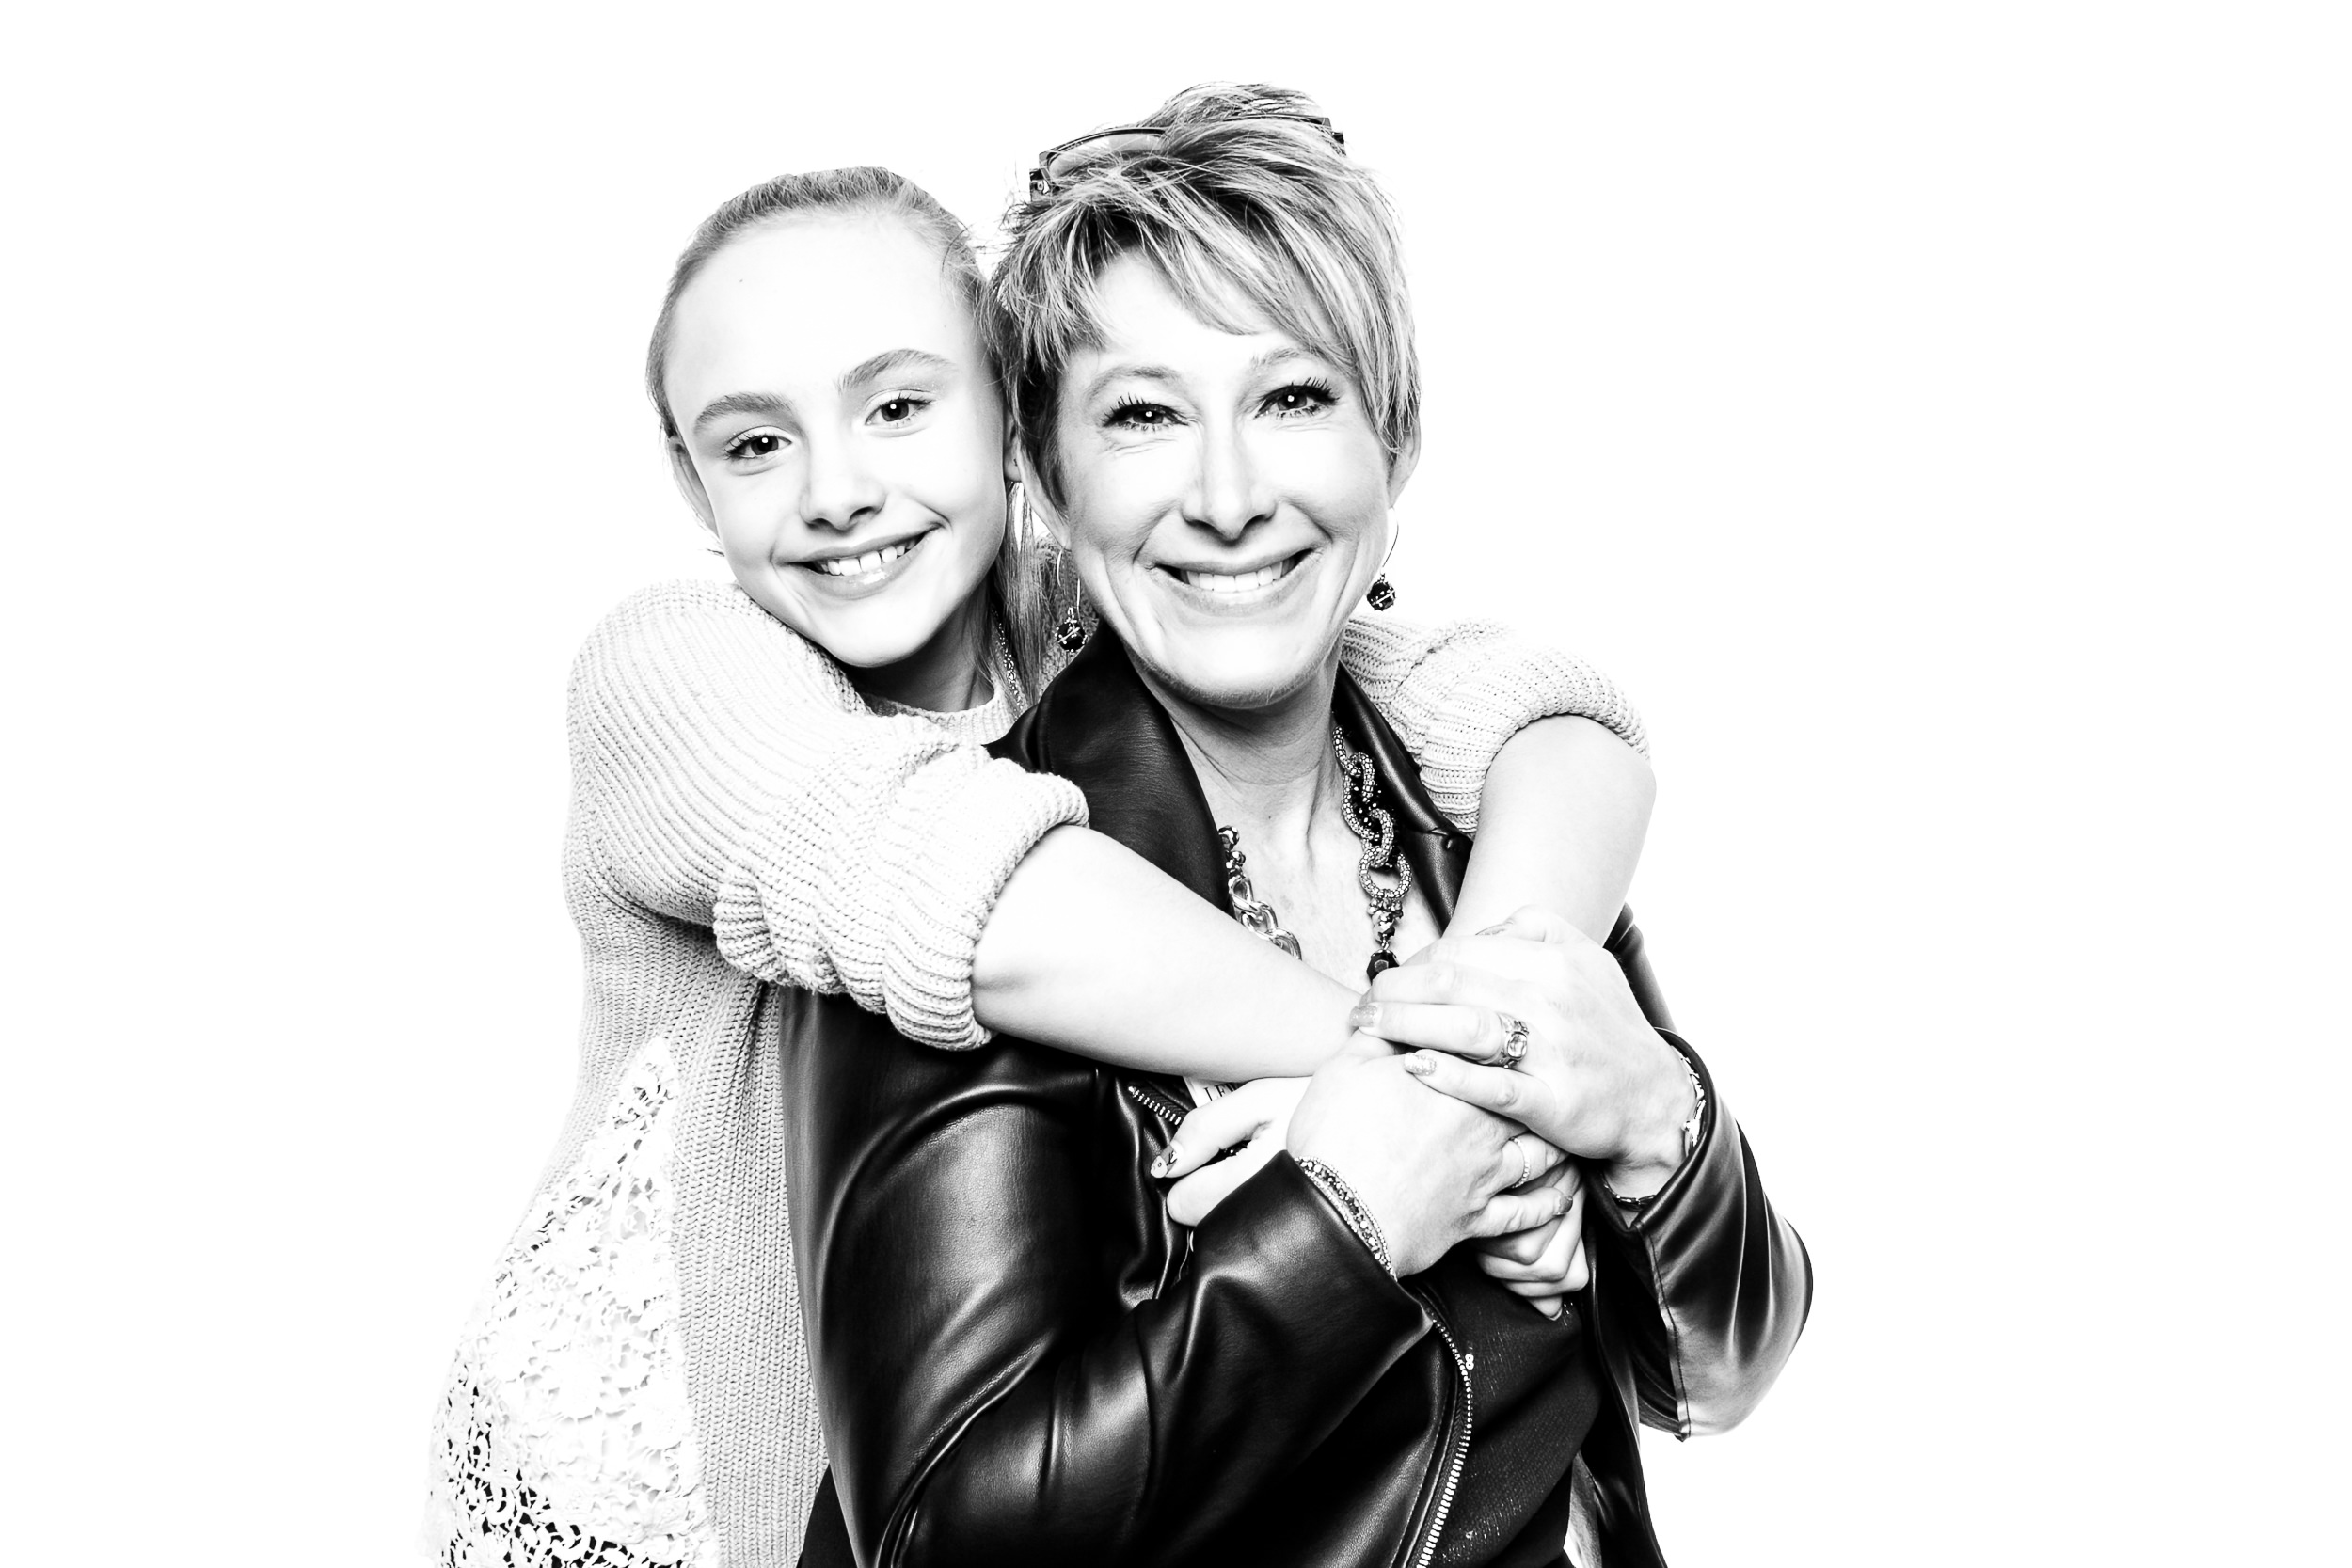 Lynn of Lynn Fletcher Weddings, posing for a portrait with her daughter in the black and white photo booth